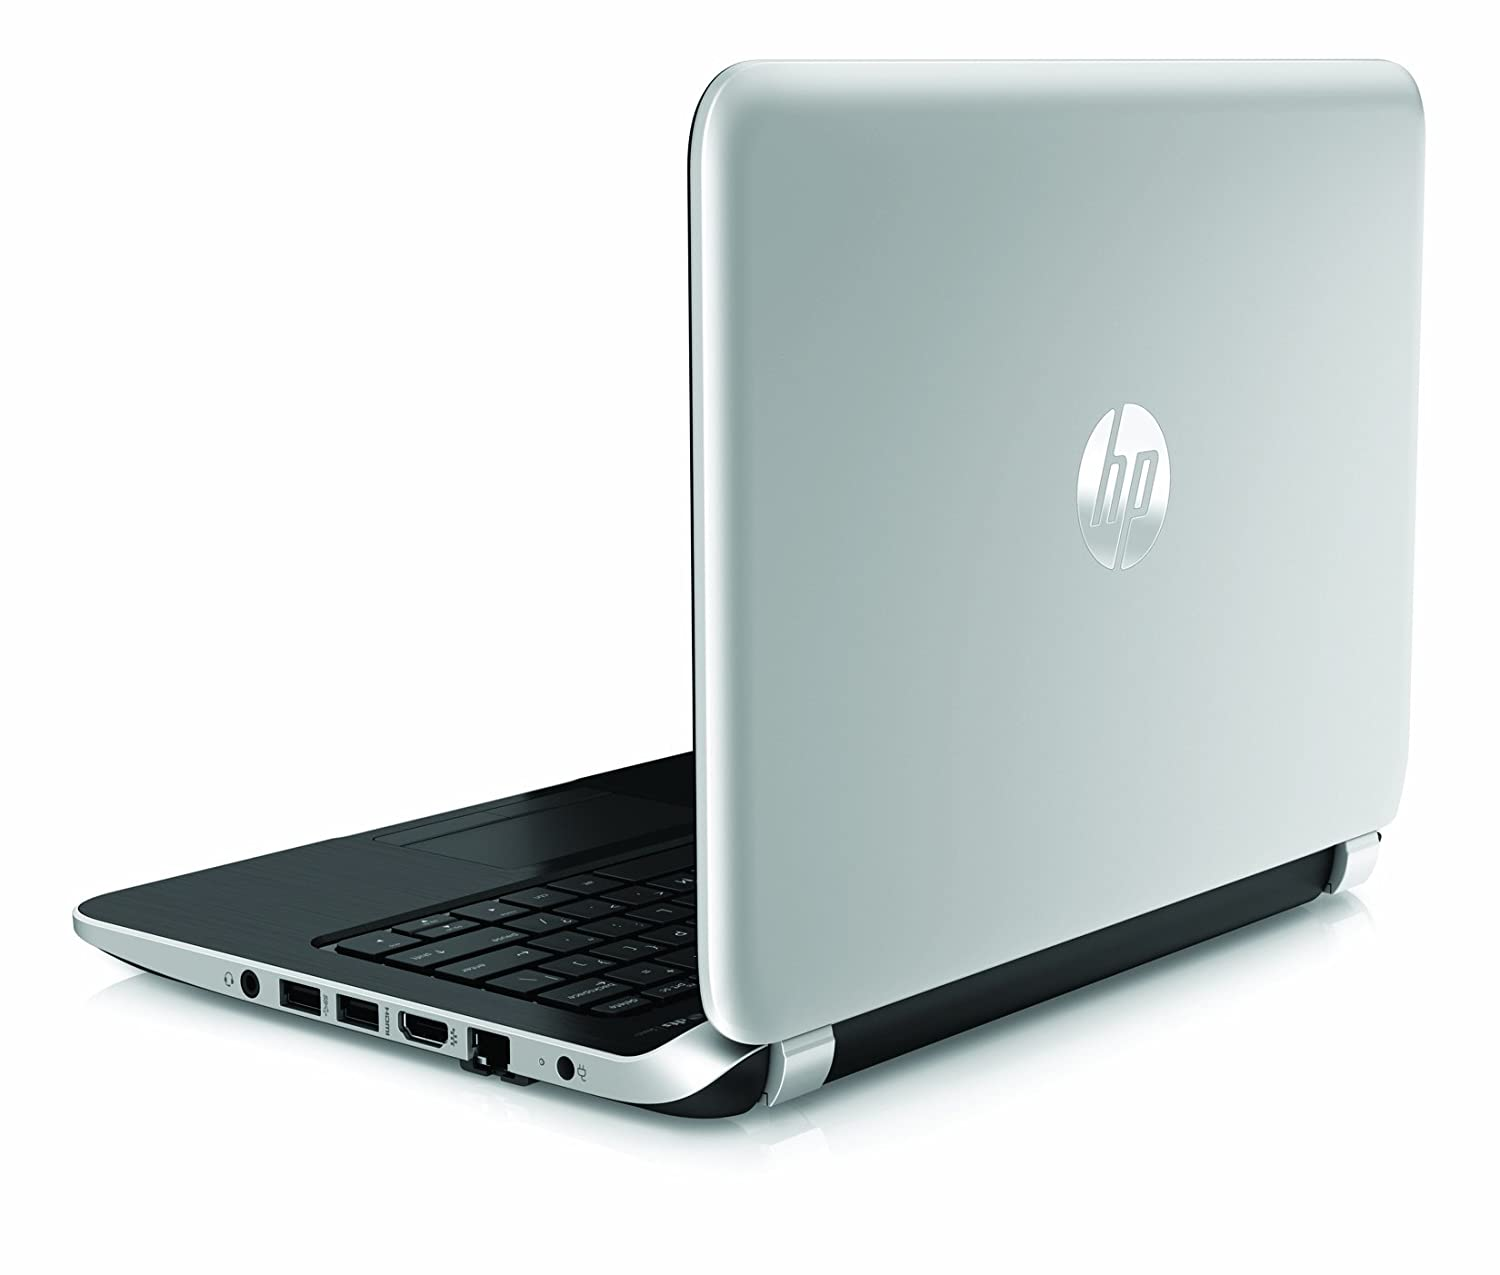 Amazon.com: HP Pavilion Touchsmart 11-E010nr 11.6-Inch Touchscreen Laptop: Computers & Accessories